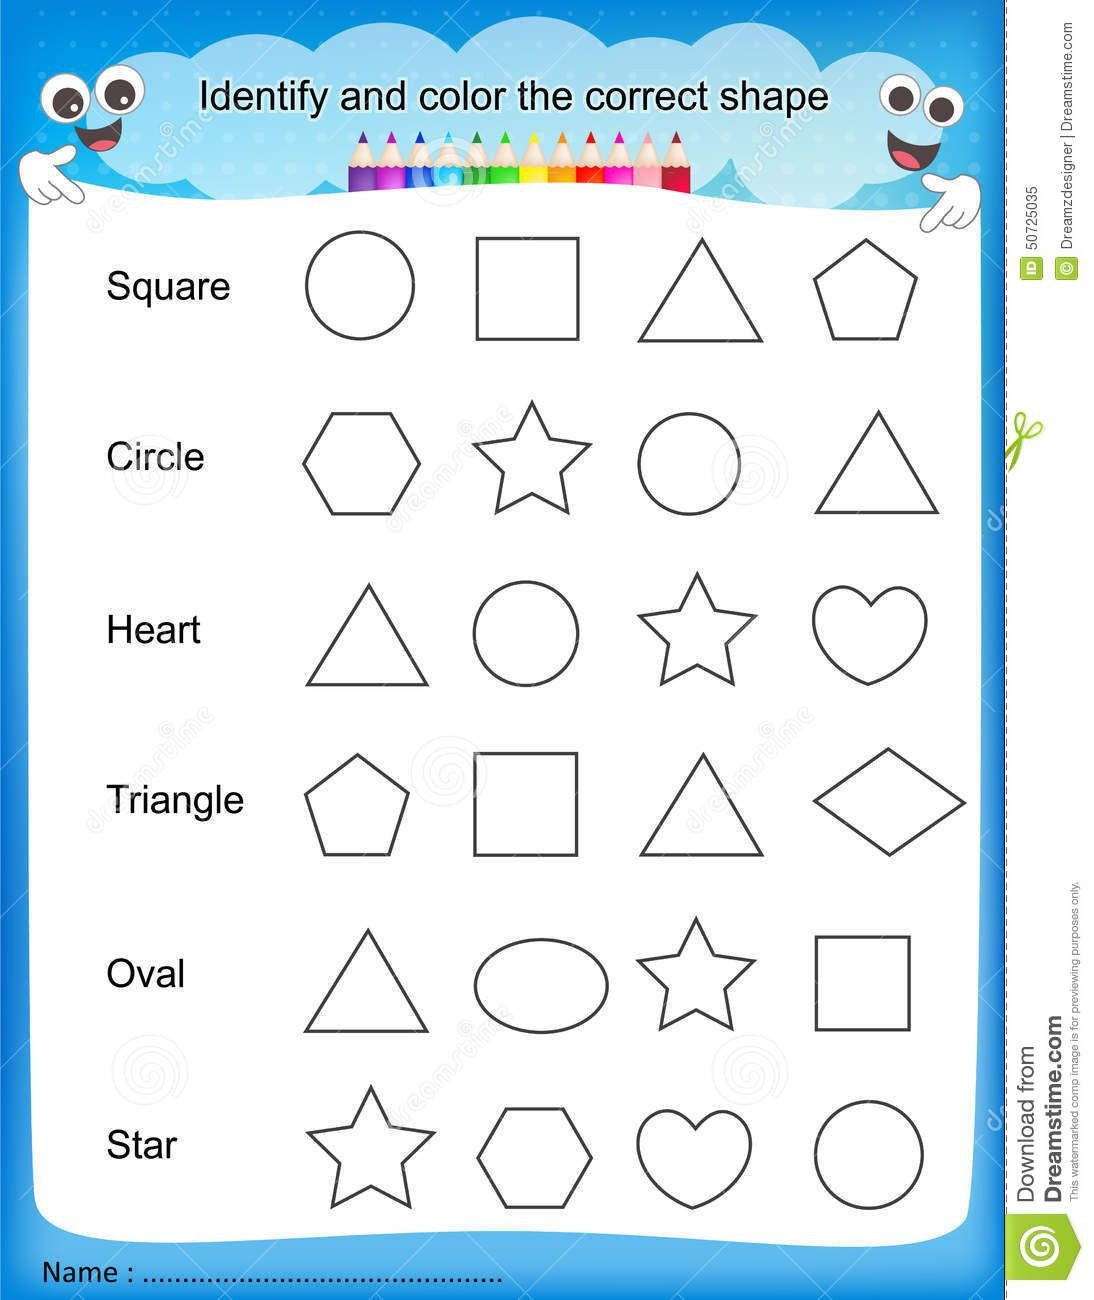 Kindergarten Shapes Worksheets Free Preschool Worksheets Colors and Shapes